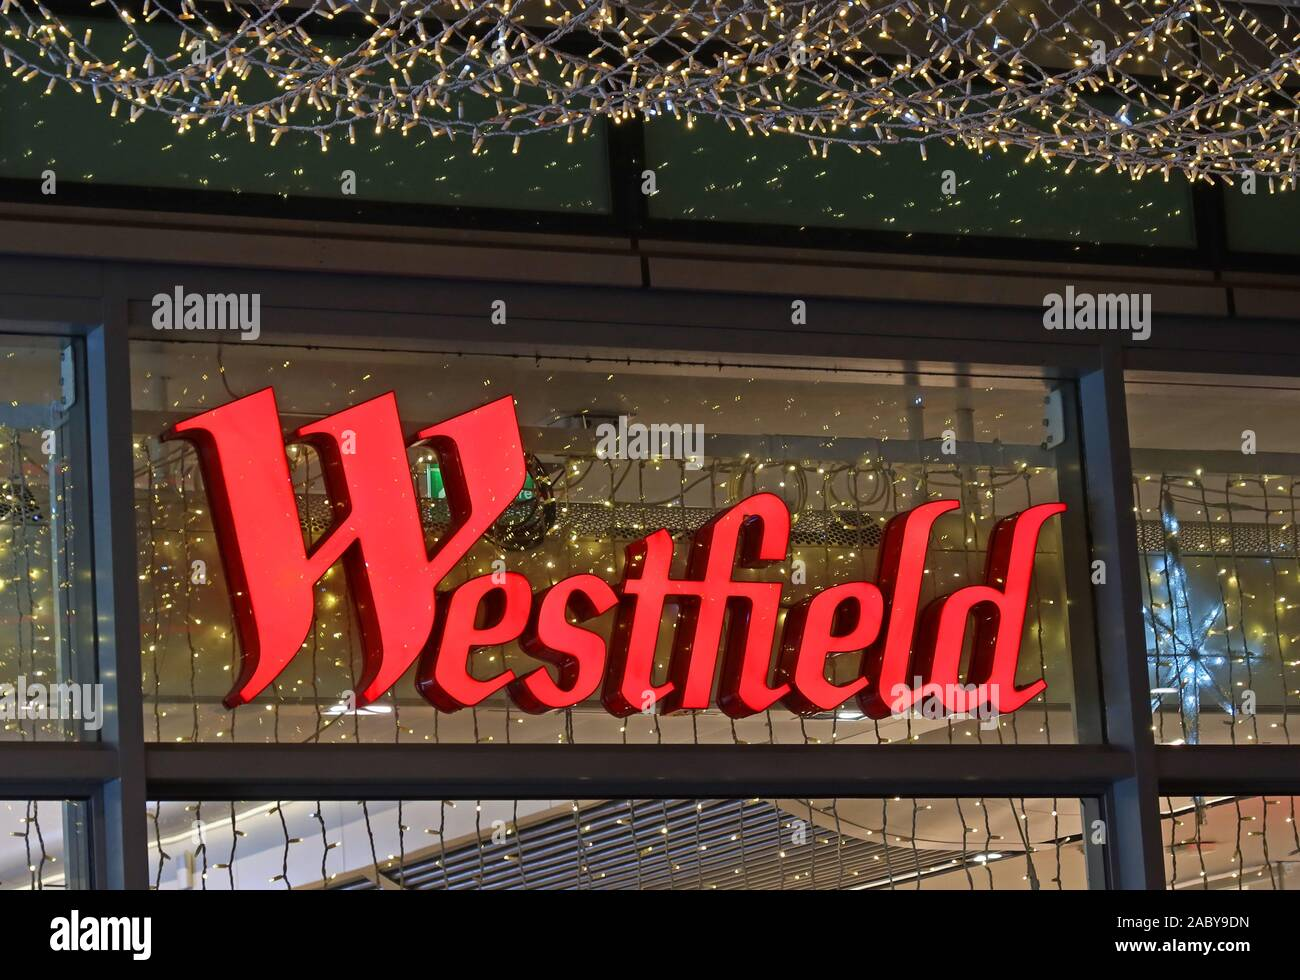 GoTonySmith,HotpixUK,@HotpixUK,England,English,London,South East,Stratford,East London,SE,UK,Westfield,Xmas,Christmas,Westfield Christmas,shop,shops,retail,inside,interior,E20,results,Unibail-Rodamco-Westfield,sign,Westfield sign,entrance,night,evening,late night shopping,chain stores,out of town shopping,high st decline,high street decline